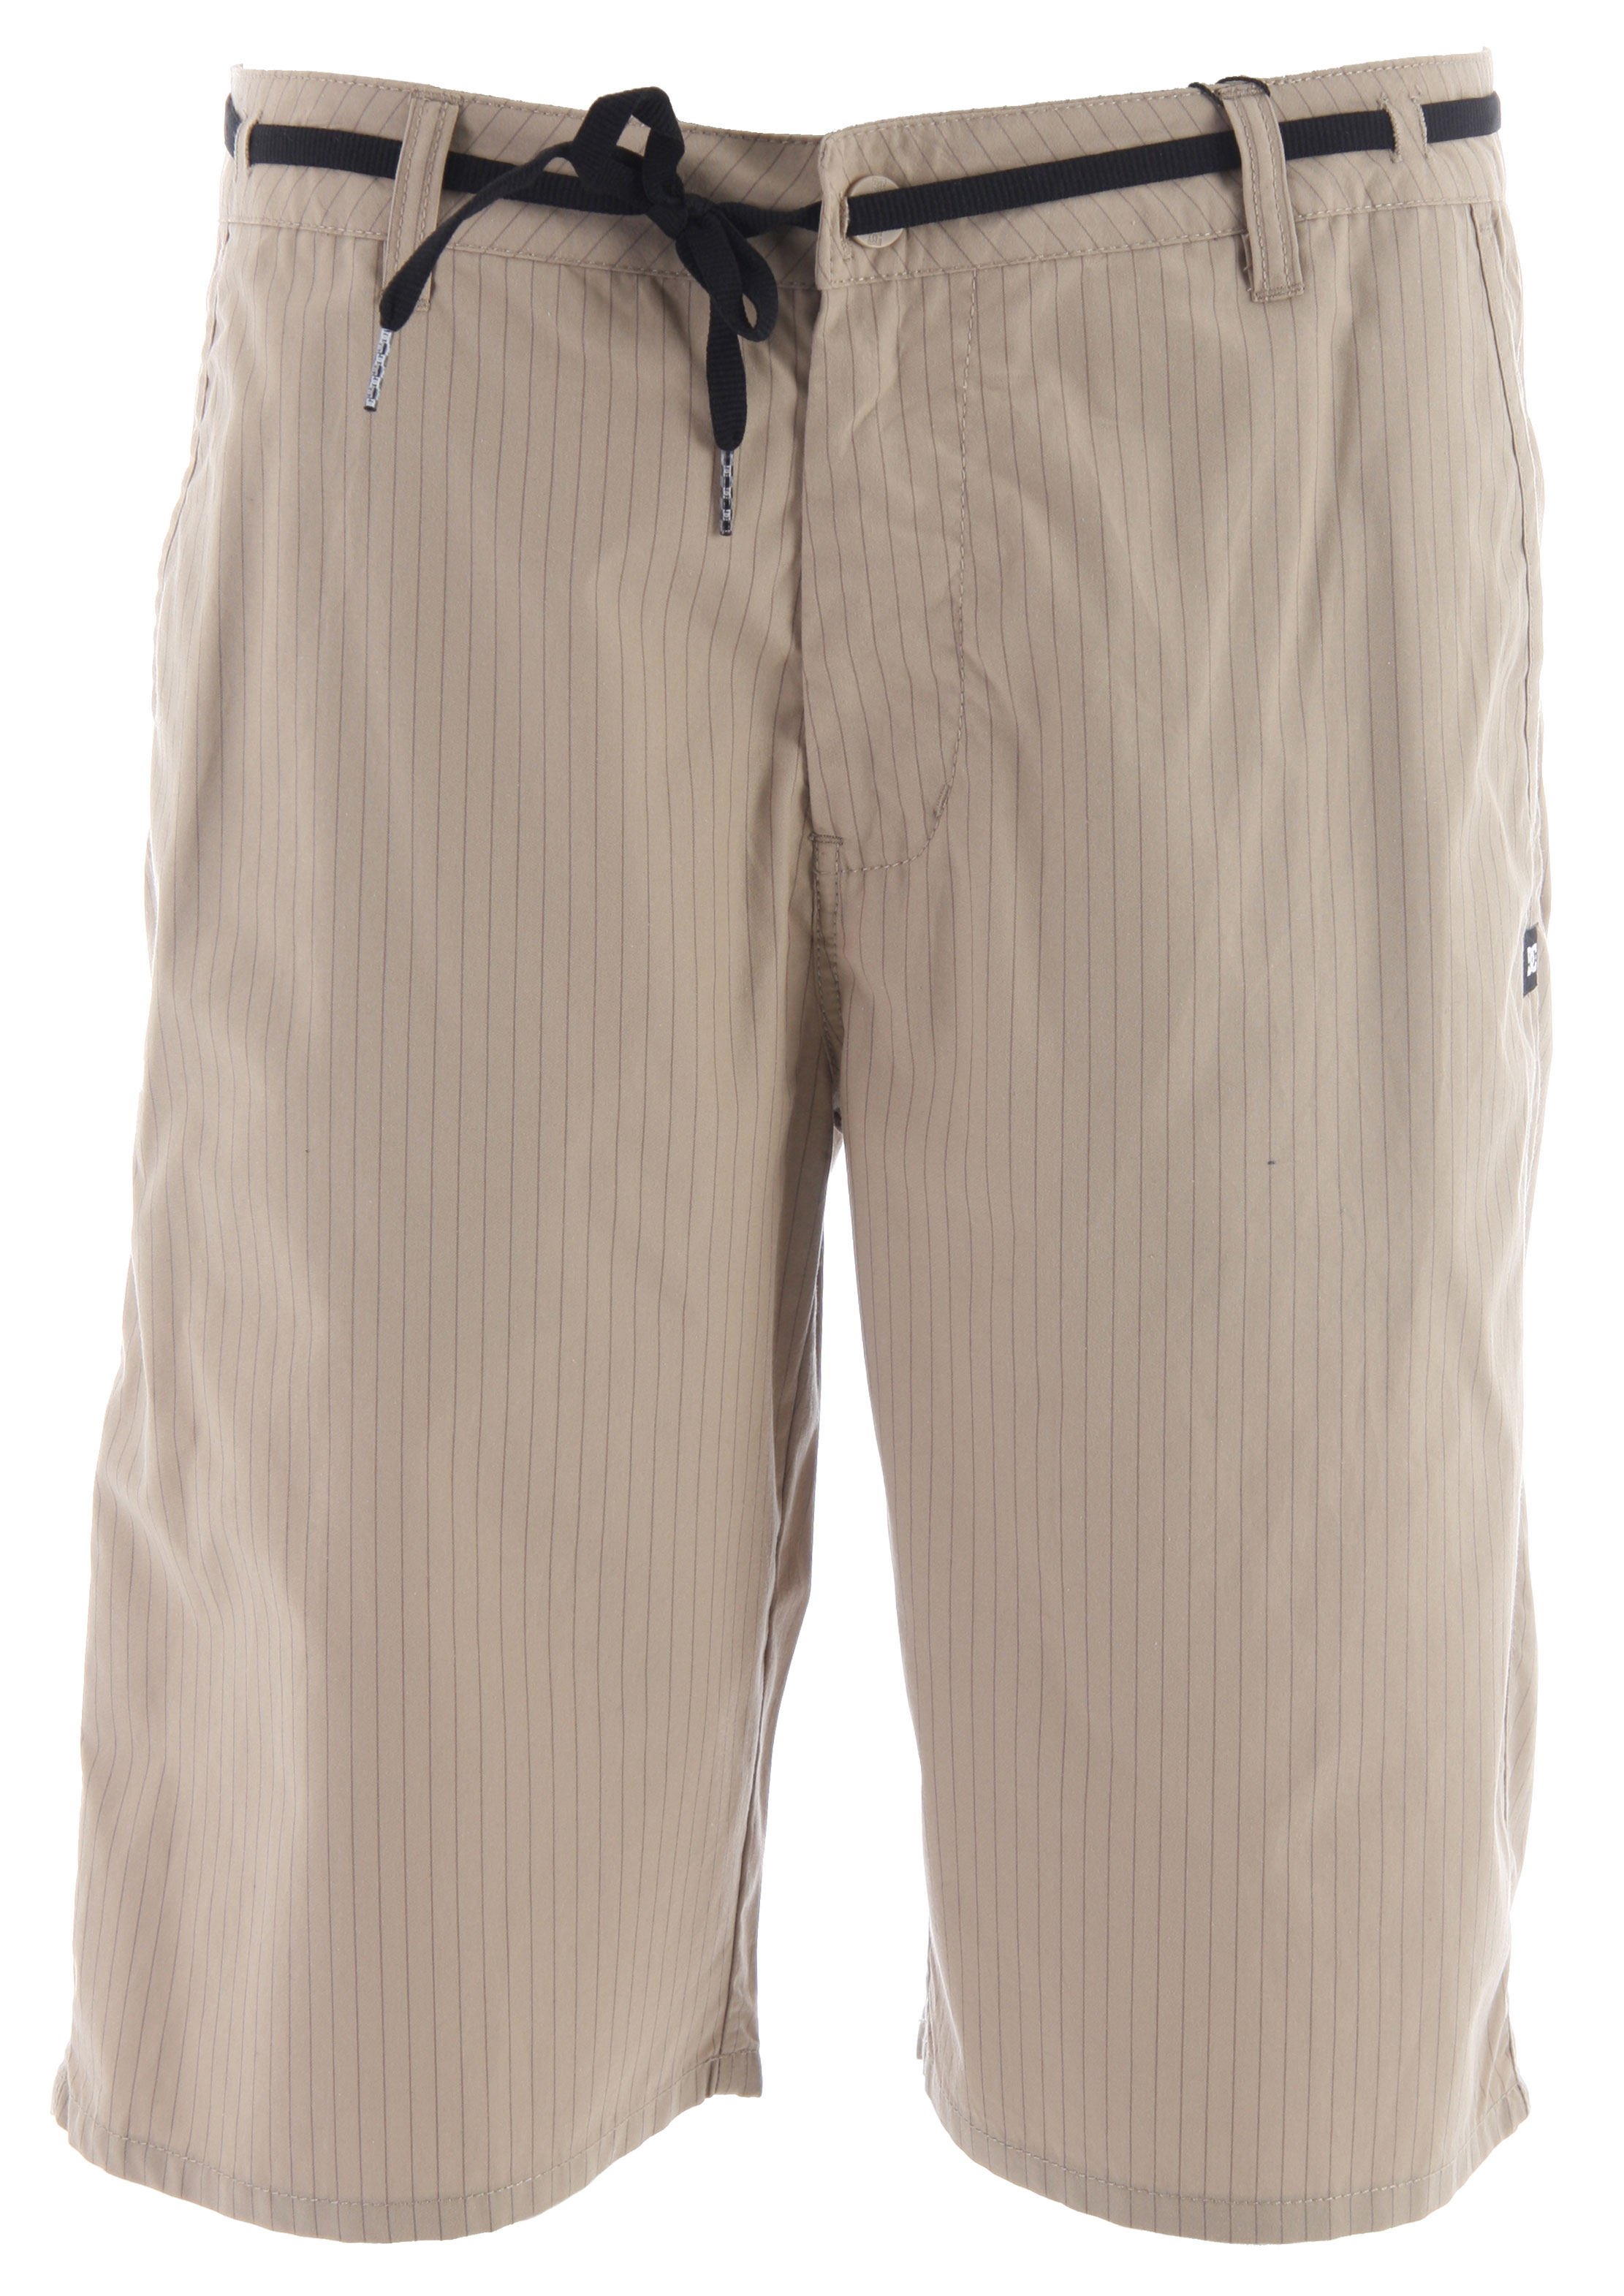 "Skateboard Key Features of the DC Mcarthur 21 Shorts: Slim fit chino shorts Yarndye pinstripe Rear welt pockets Zip fly 21"" outseam 100% cotton - $22.95"